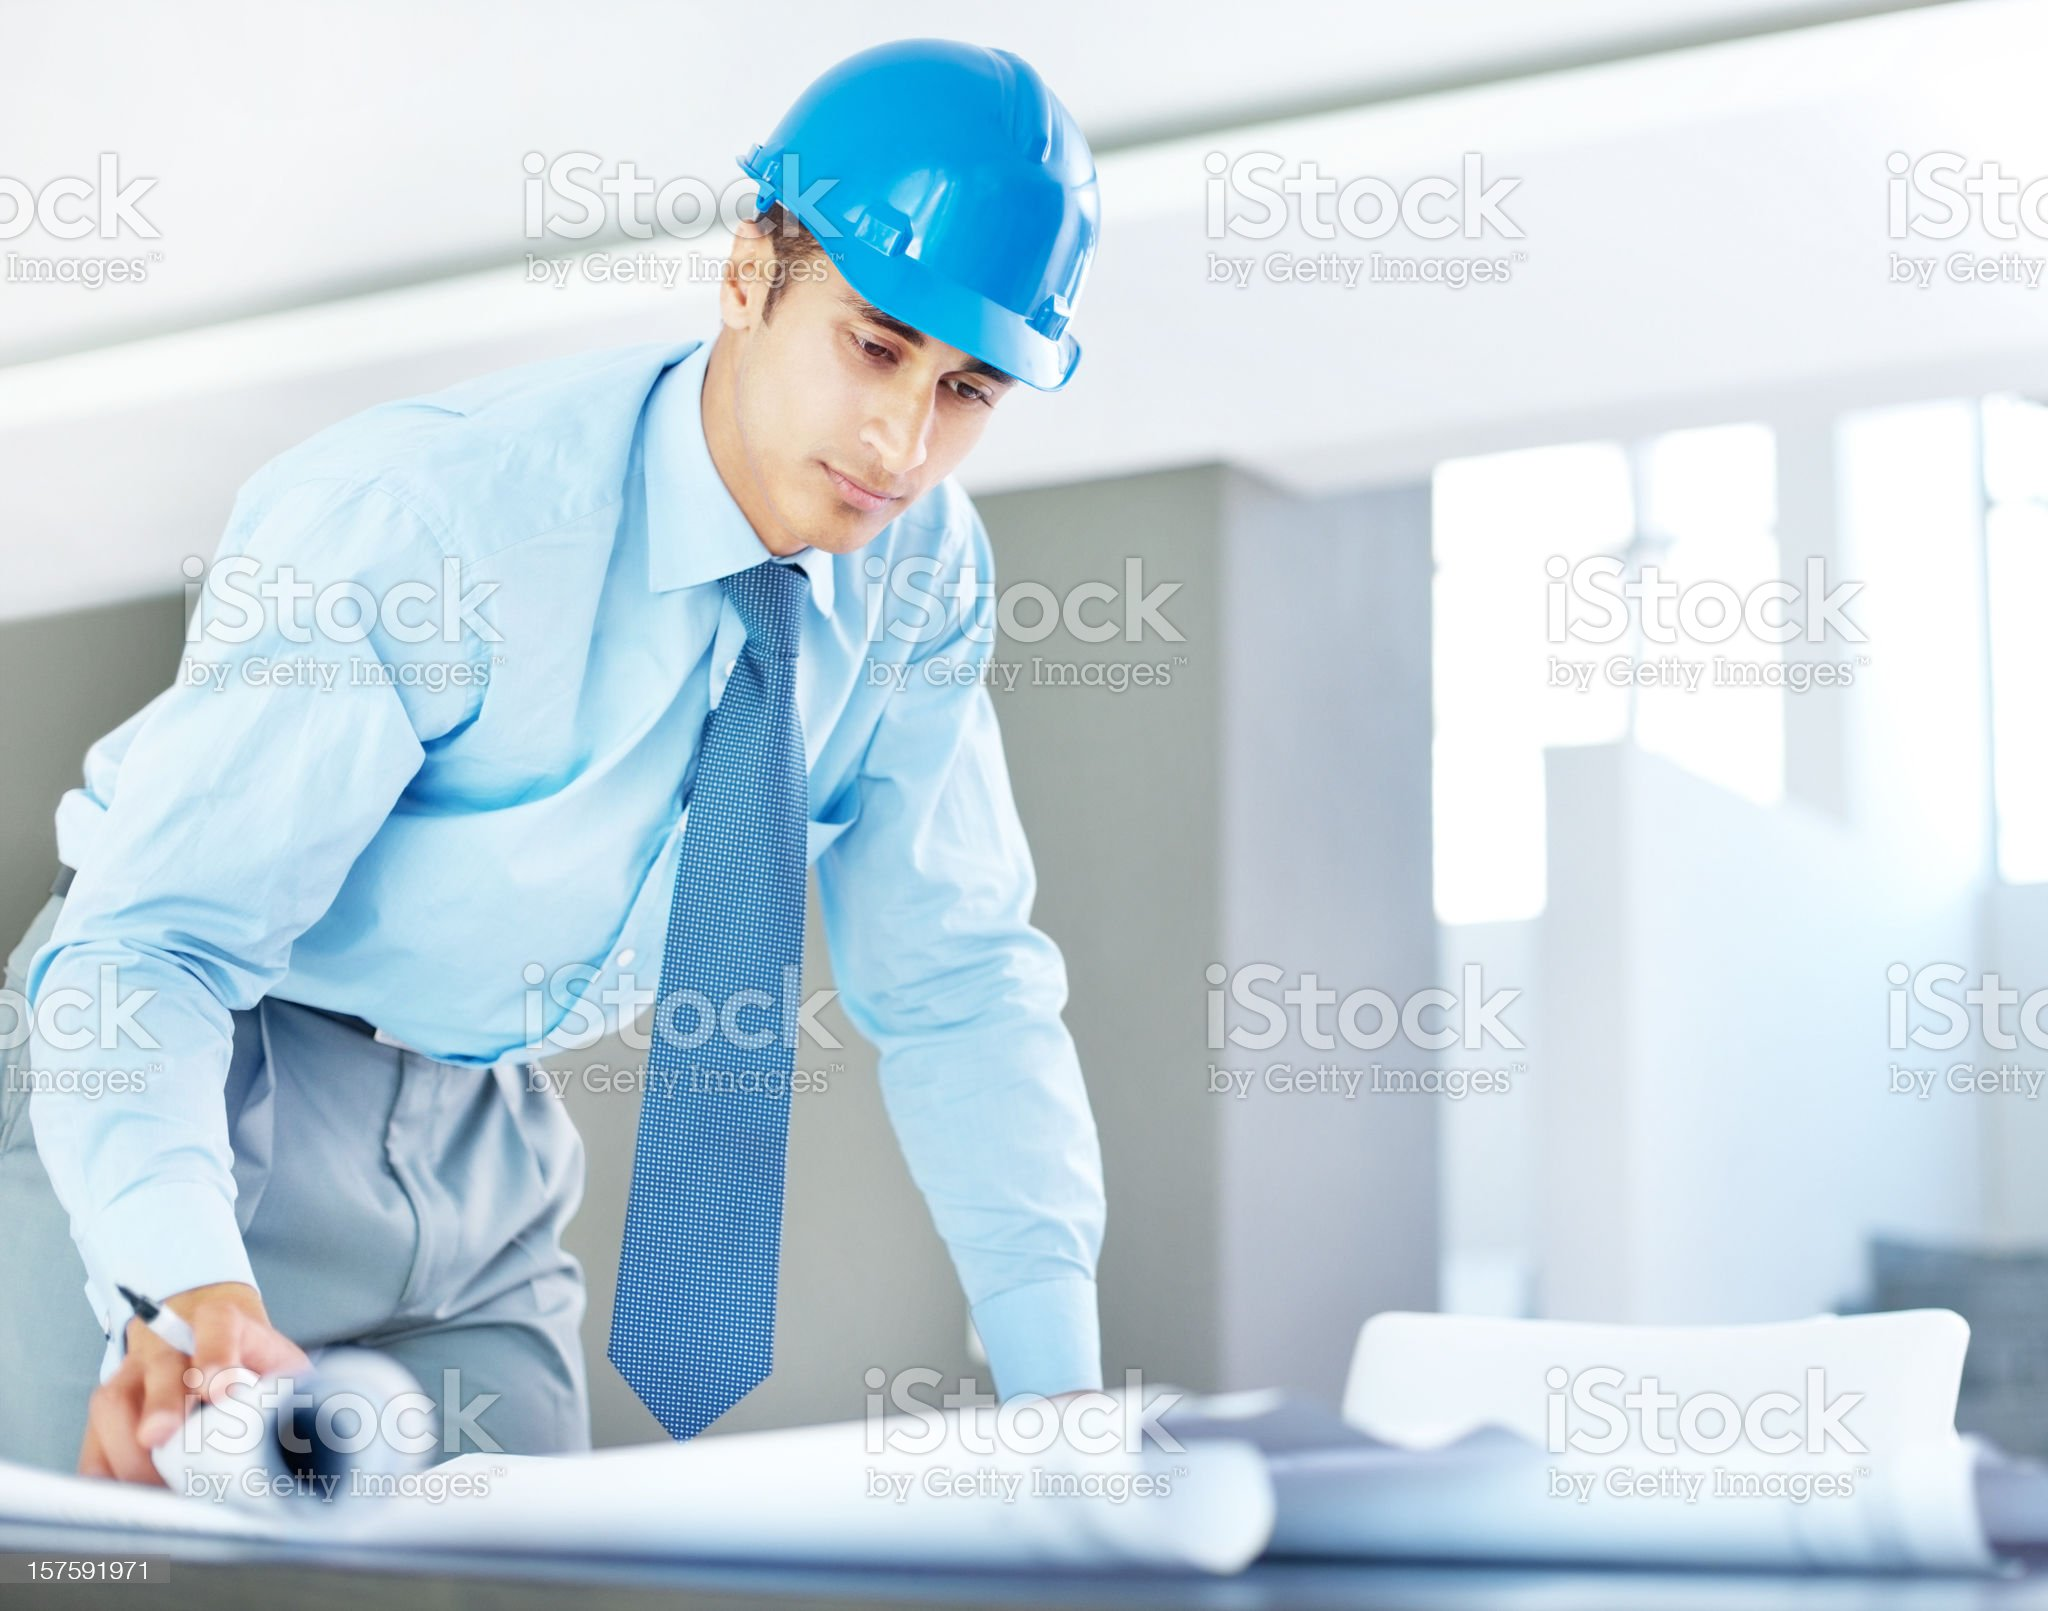 Handsome businessman working on blue prints royalty-free stock photo